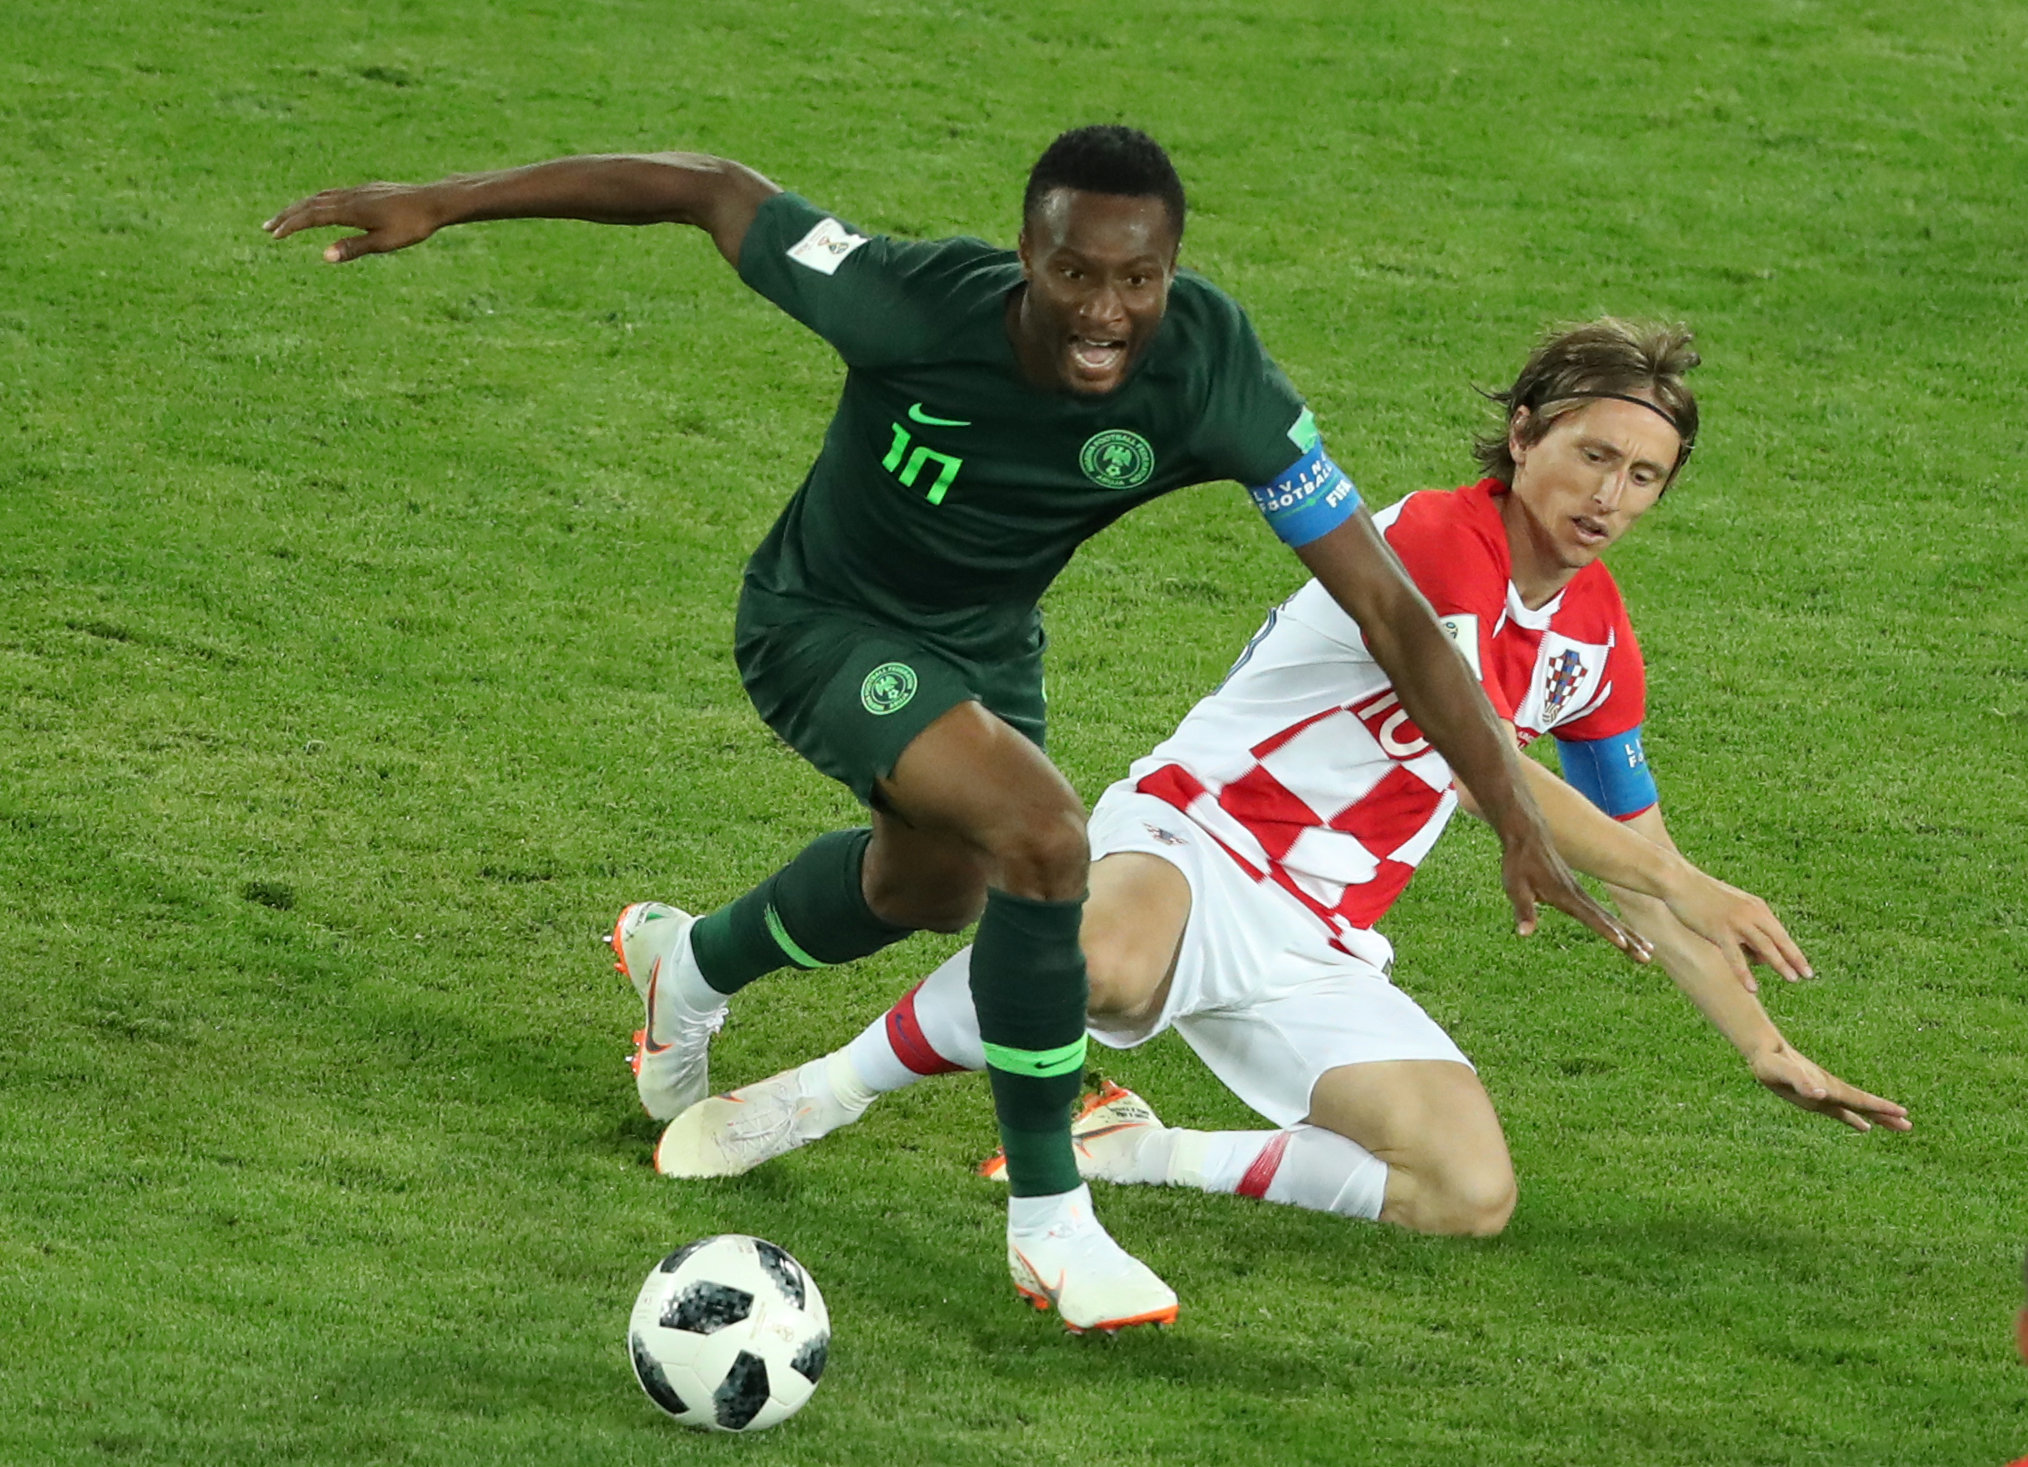 2018-06-16T201354Z_1089101970_RC1EFAE798F0_RTRMADP_3_SOCCER-WORLDCUP-CRO-NGA